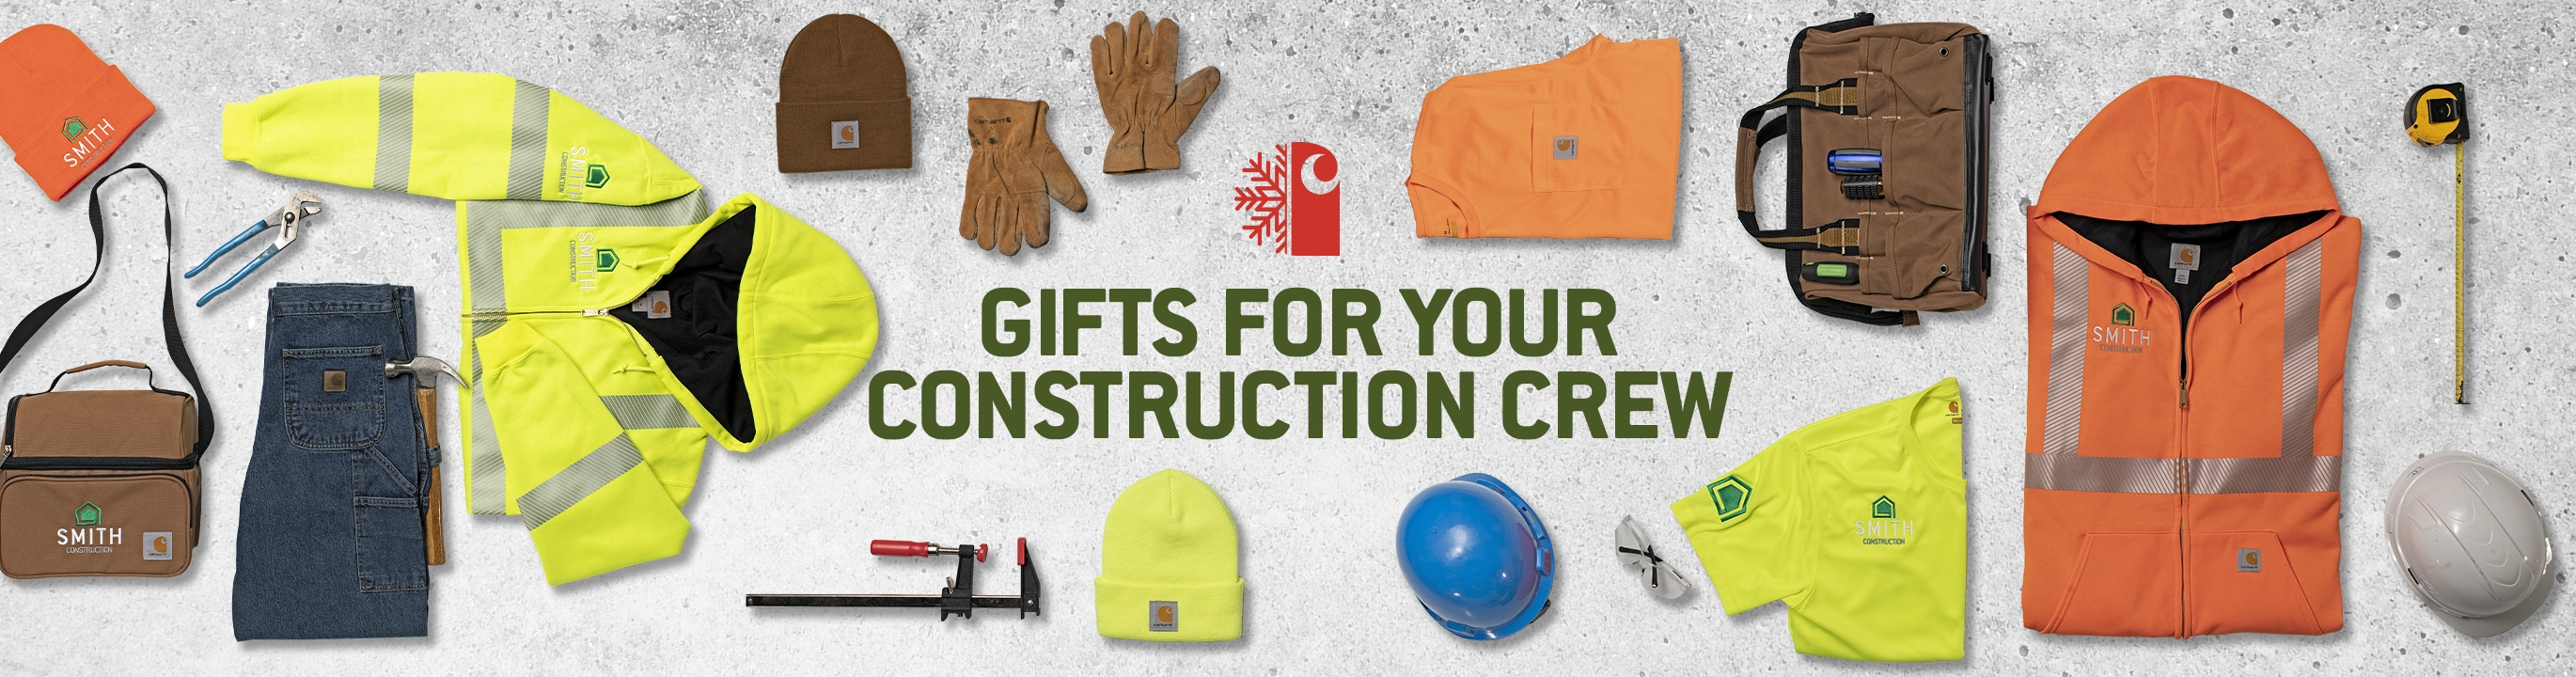 Gifts For Your Construction Crew